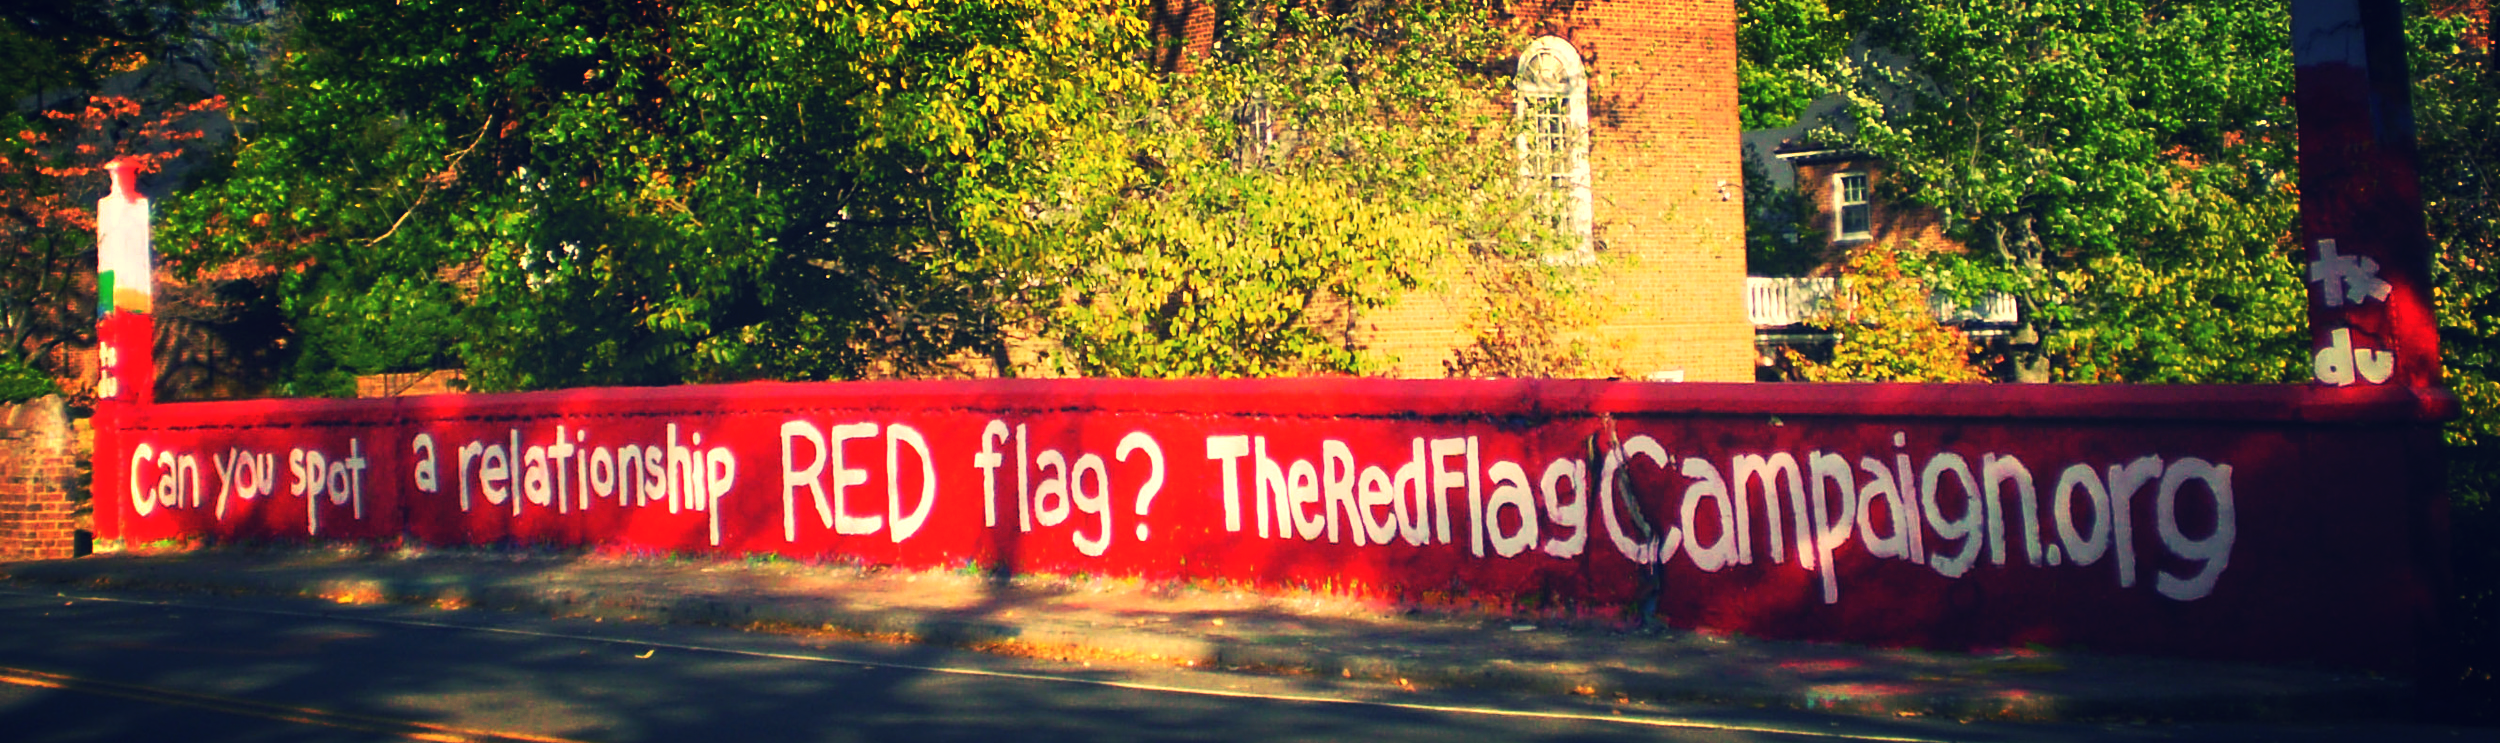 Red Flag Campaign mural on college campus